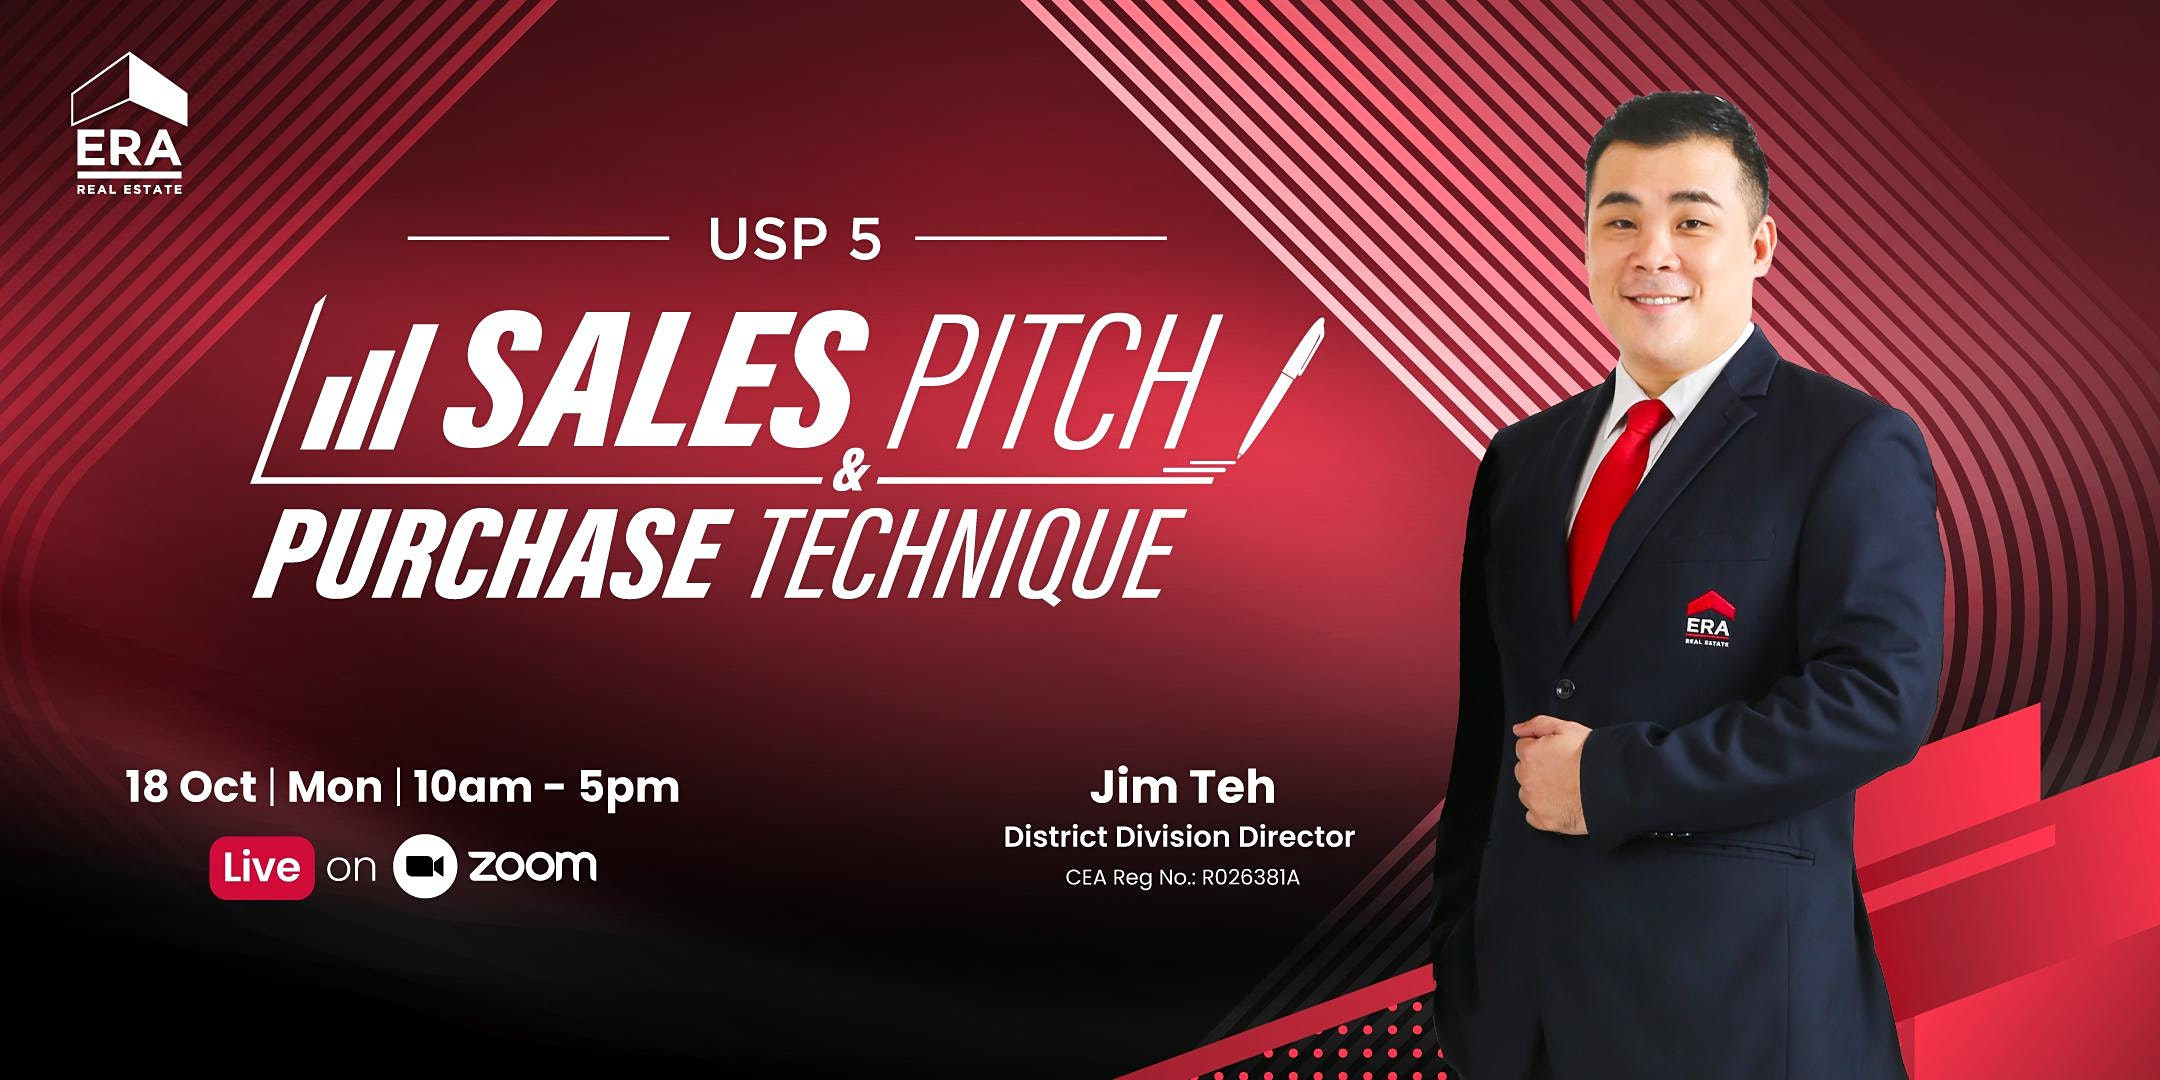 USP 5 : Sales Pitch and Purchase Technique